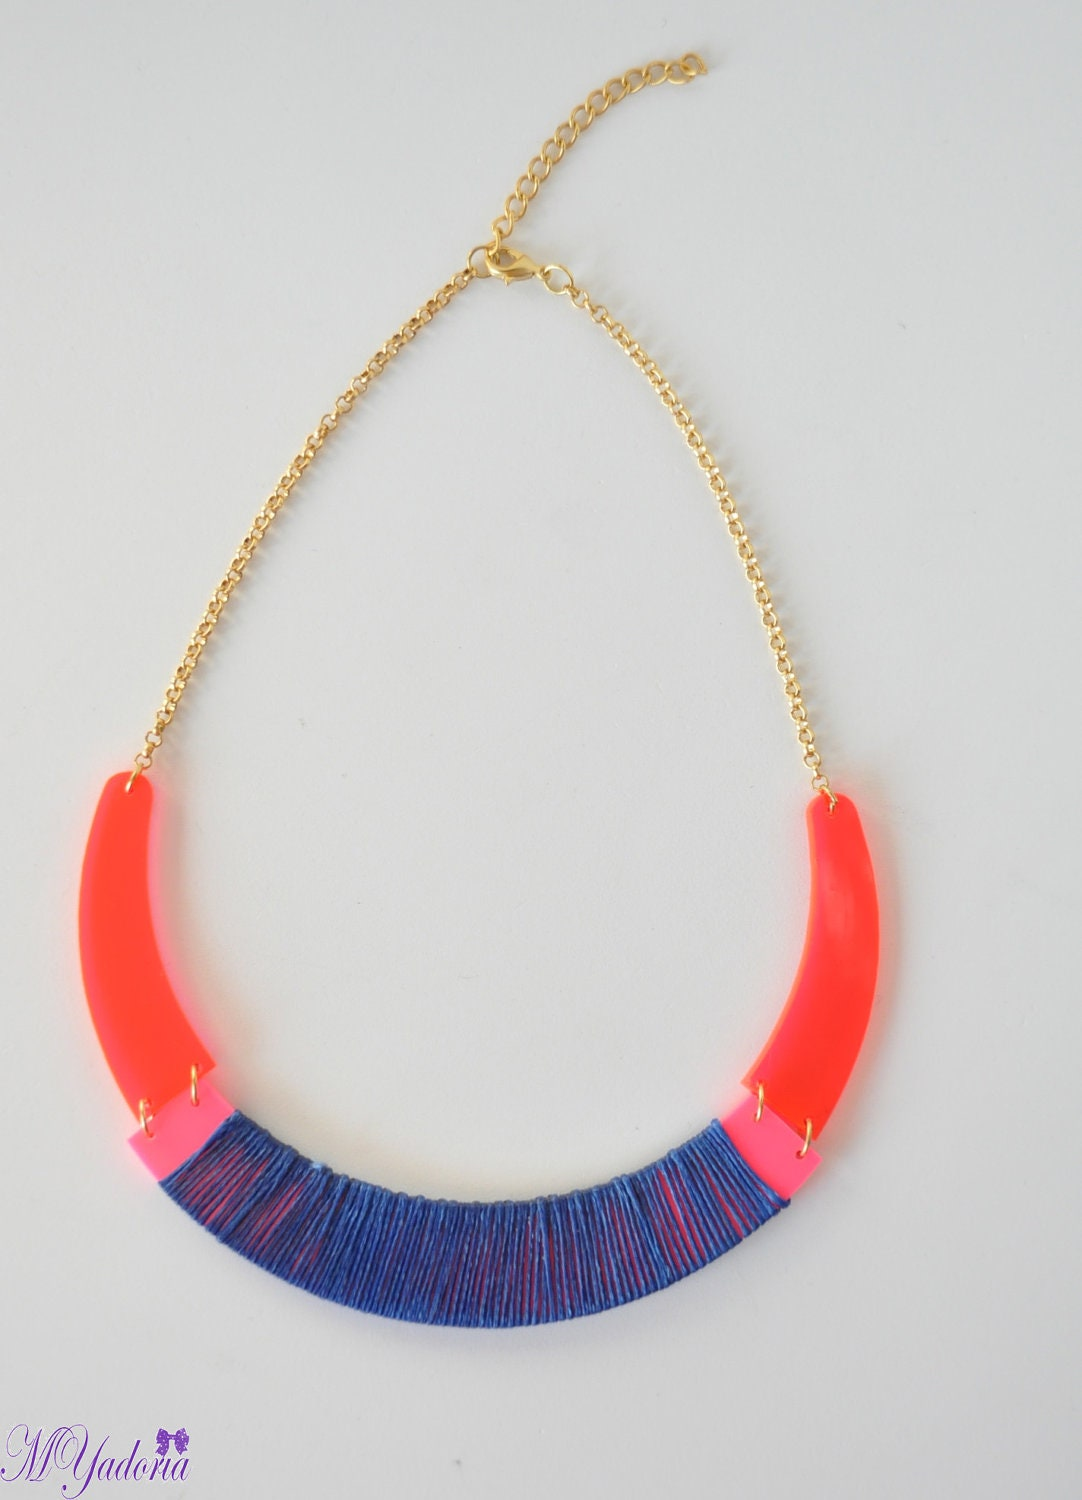 Neon transparent acrylic plexiglass necklace - MYadoria